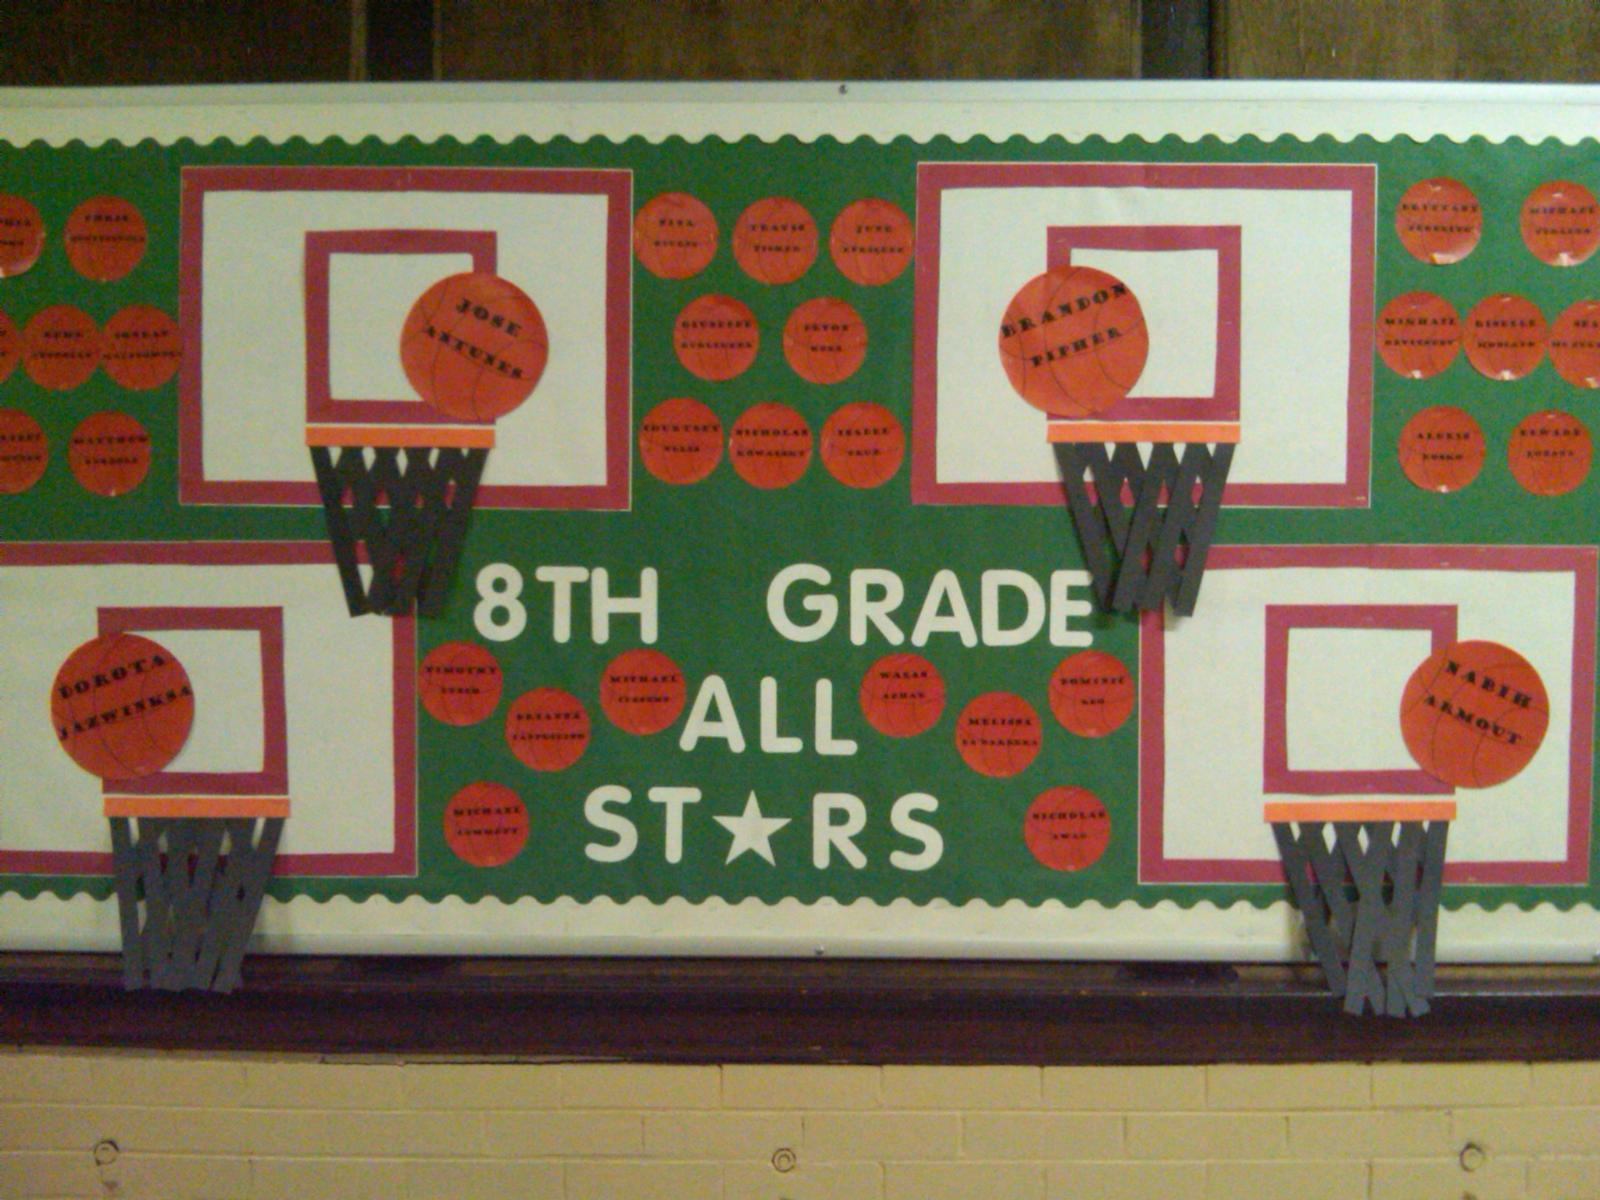 Student Achievement Bulletin Boards - Miss Keeler 8th